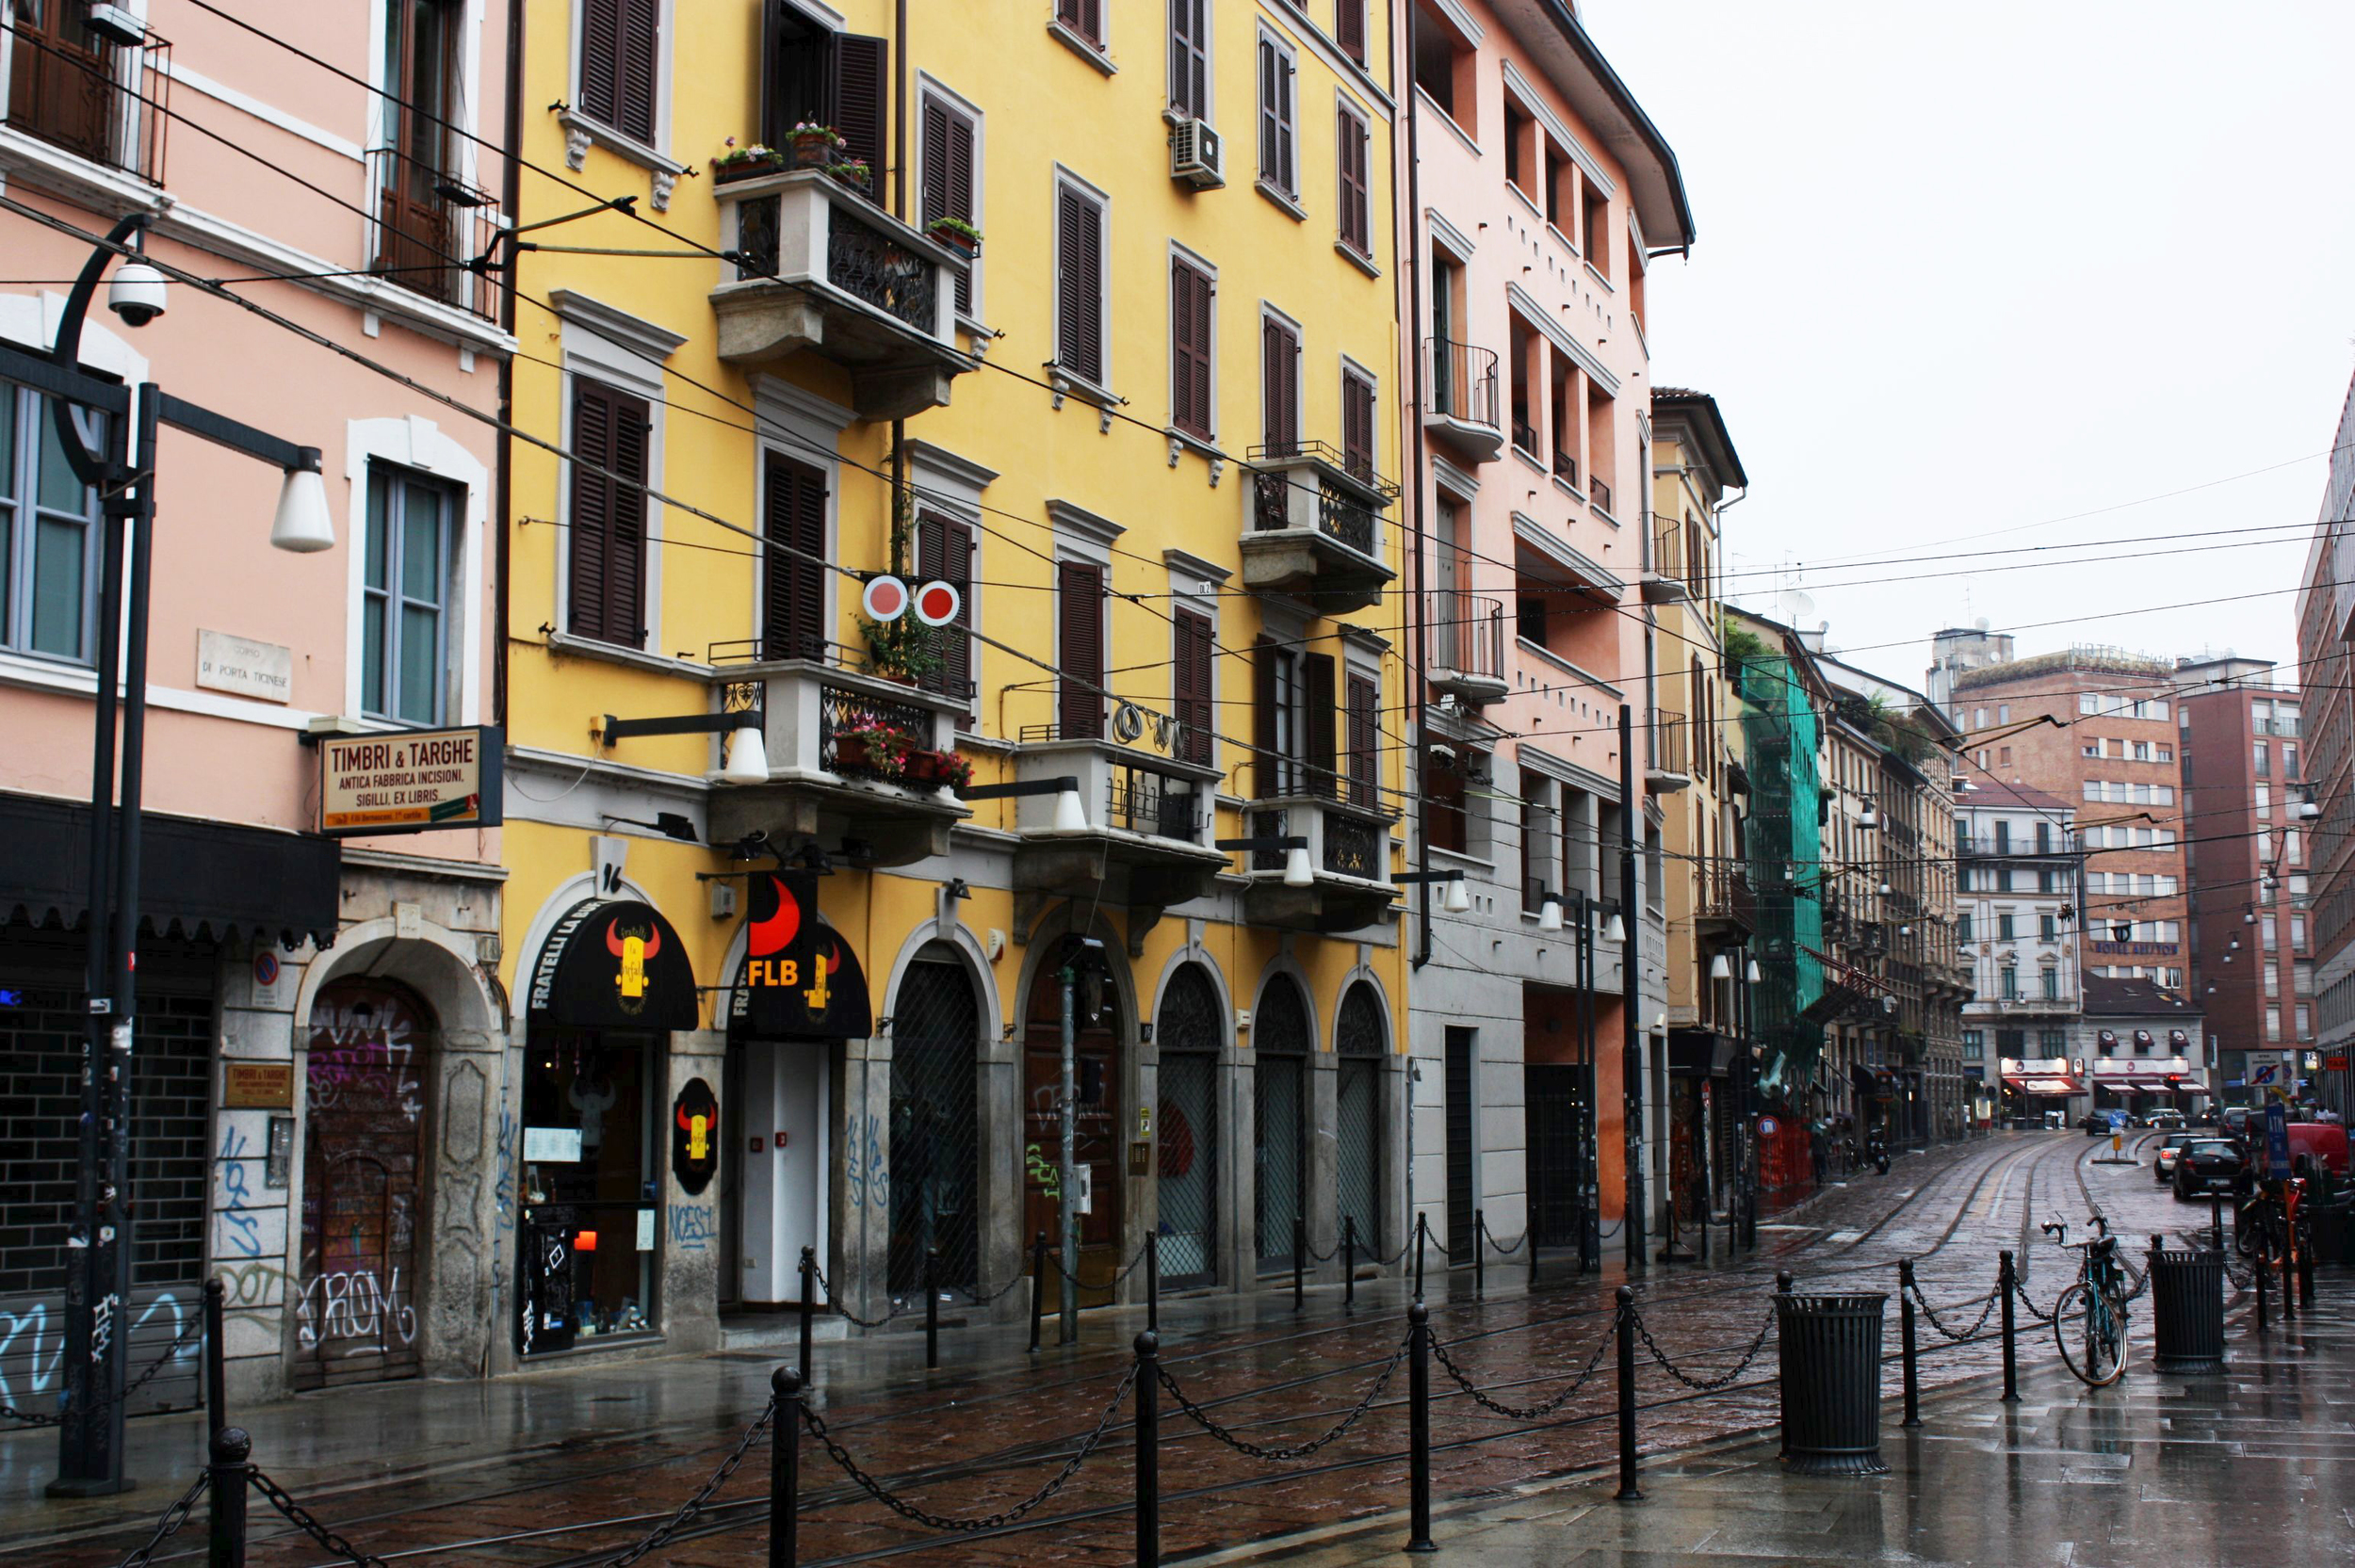 Shops along the streets: Corso Porta Ticinese